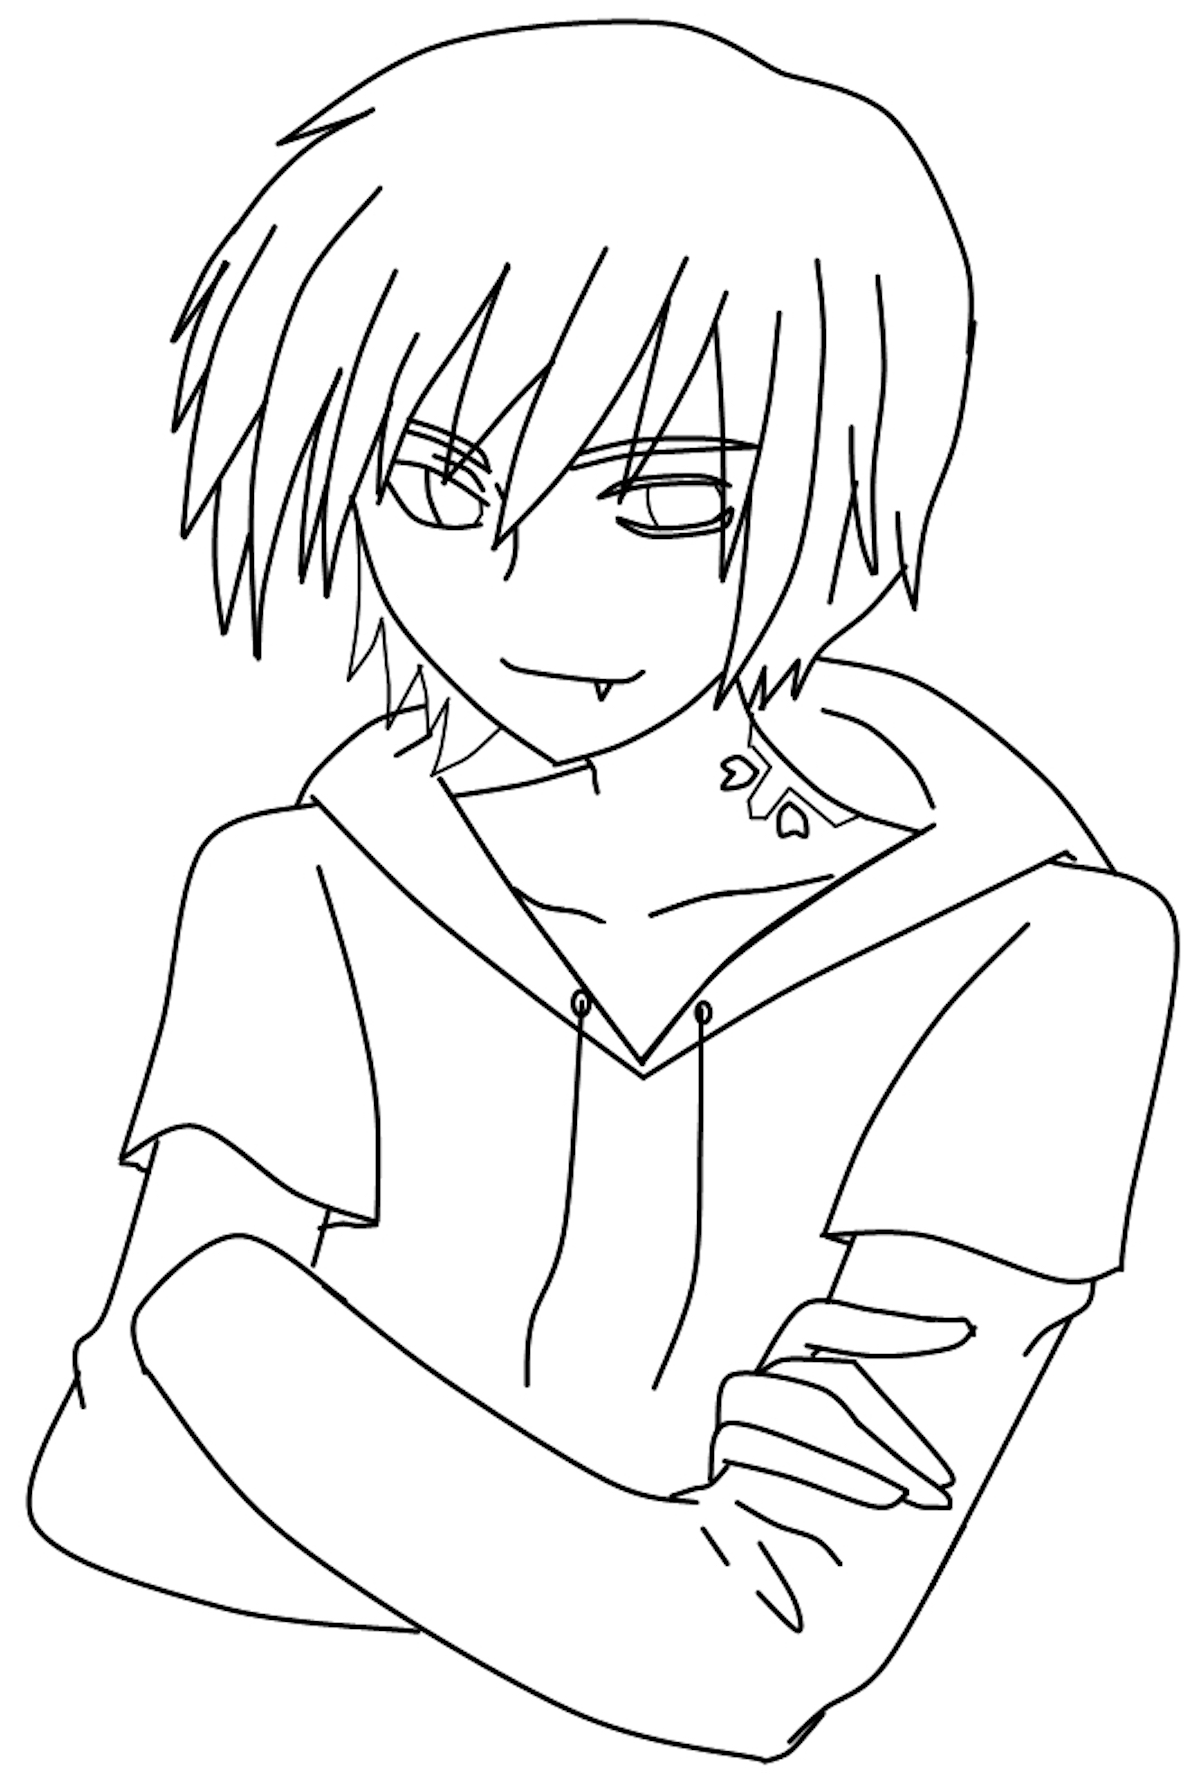 coloring pages of anime free printable anime coloring pages coloring home pages coloring of anime